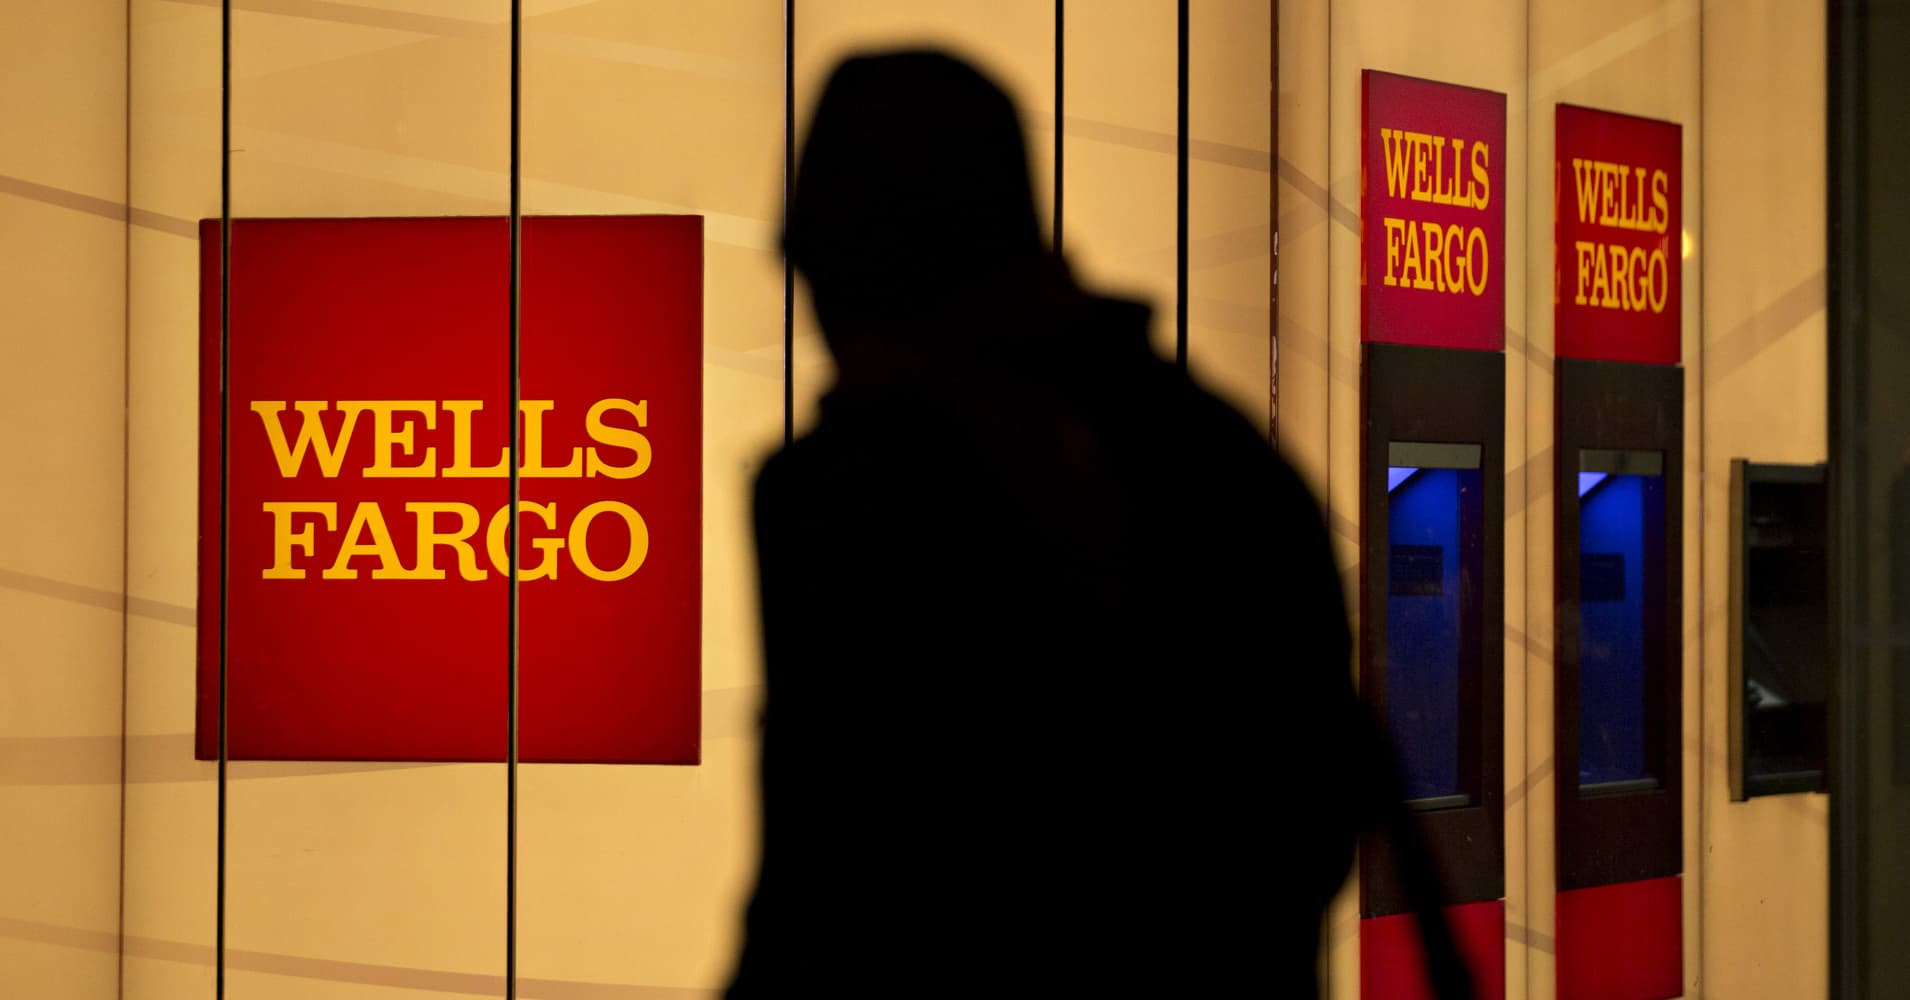 wells fargo will pay million to settle customer fraud case